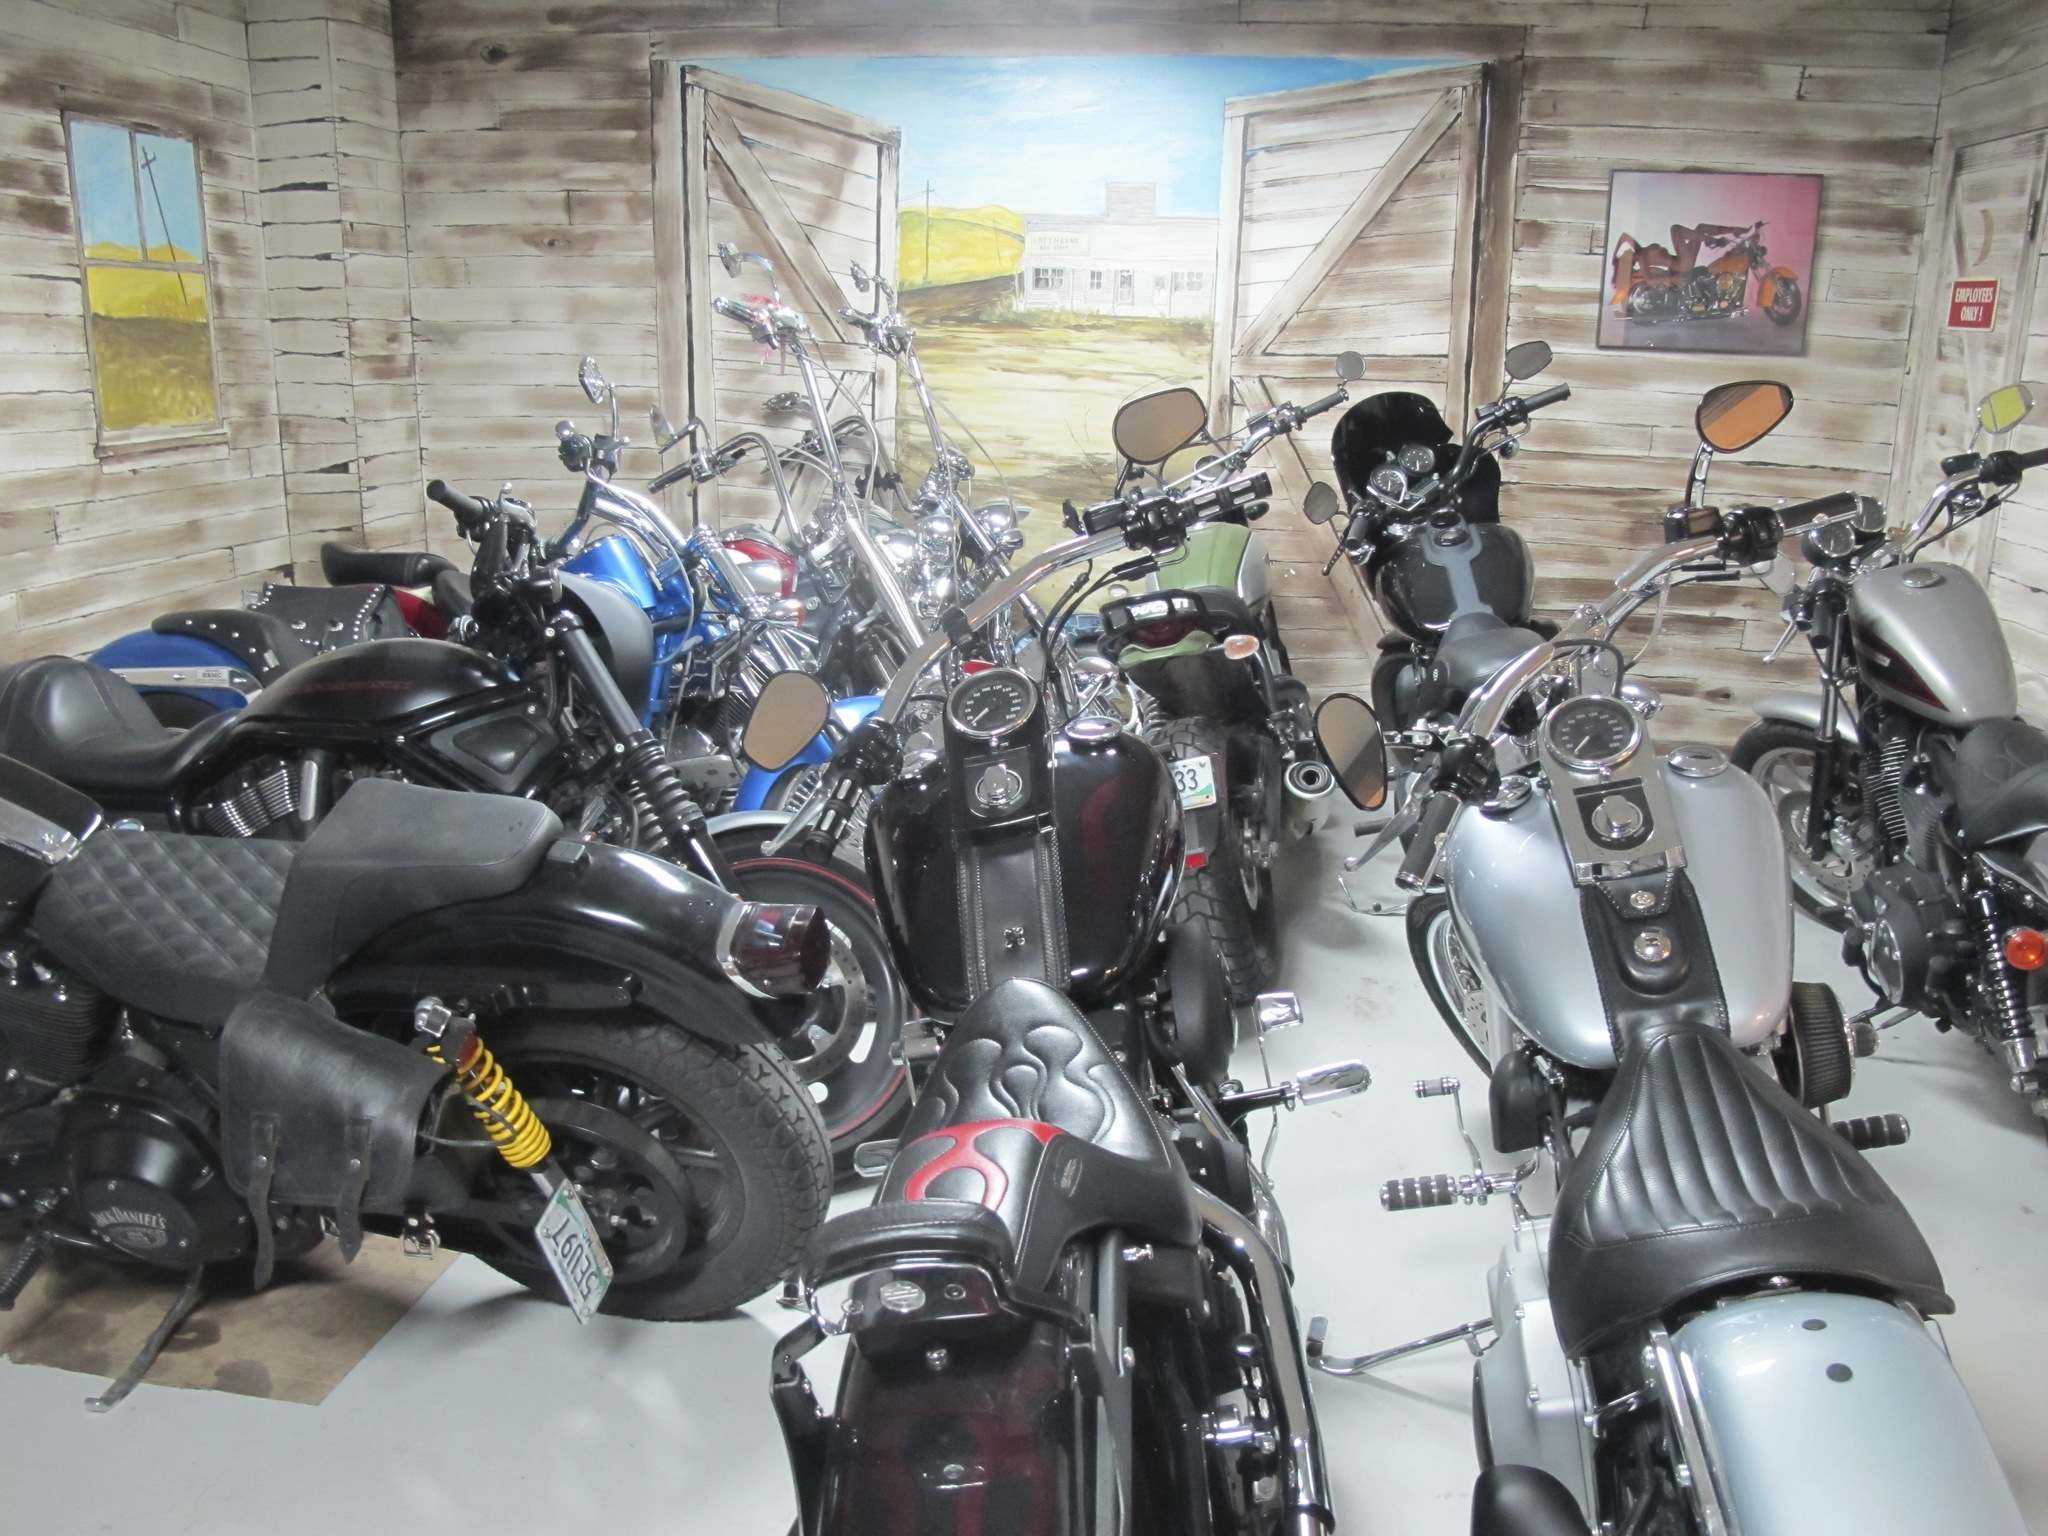 There's enough room to store about a dozen motorcycles for the winter in the showroom at Prairie Iron Motorworks, a motorcycle repair shop on Sargent Avenue.